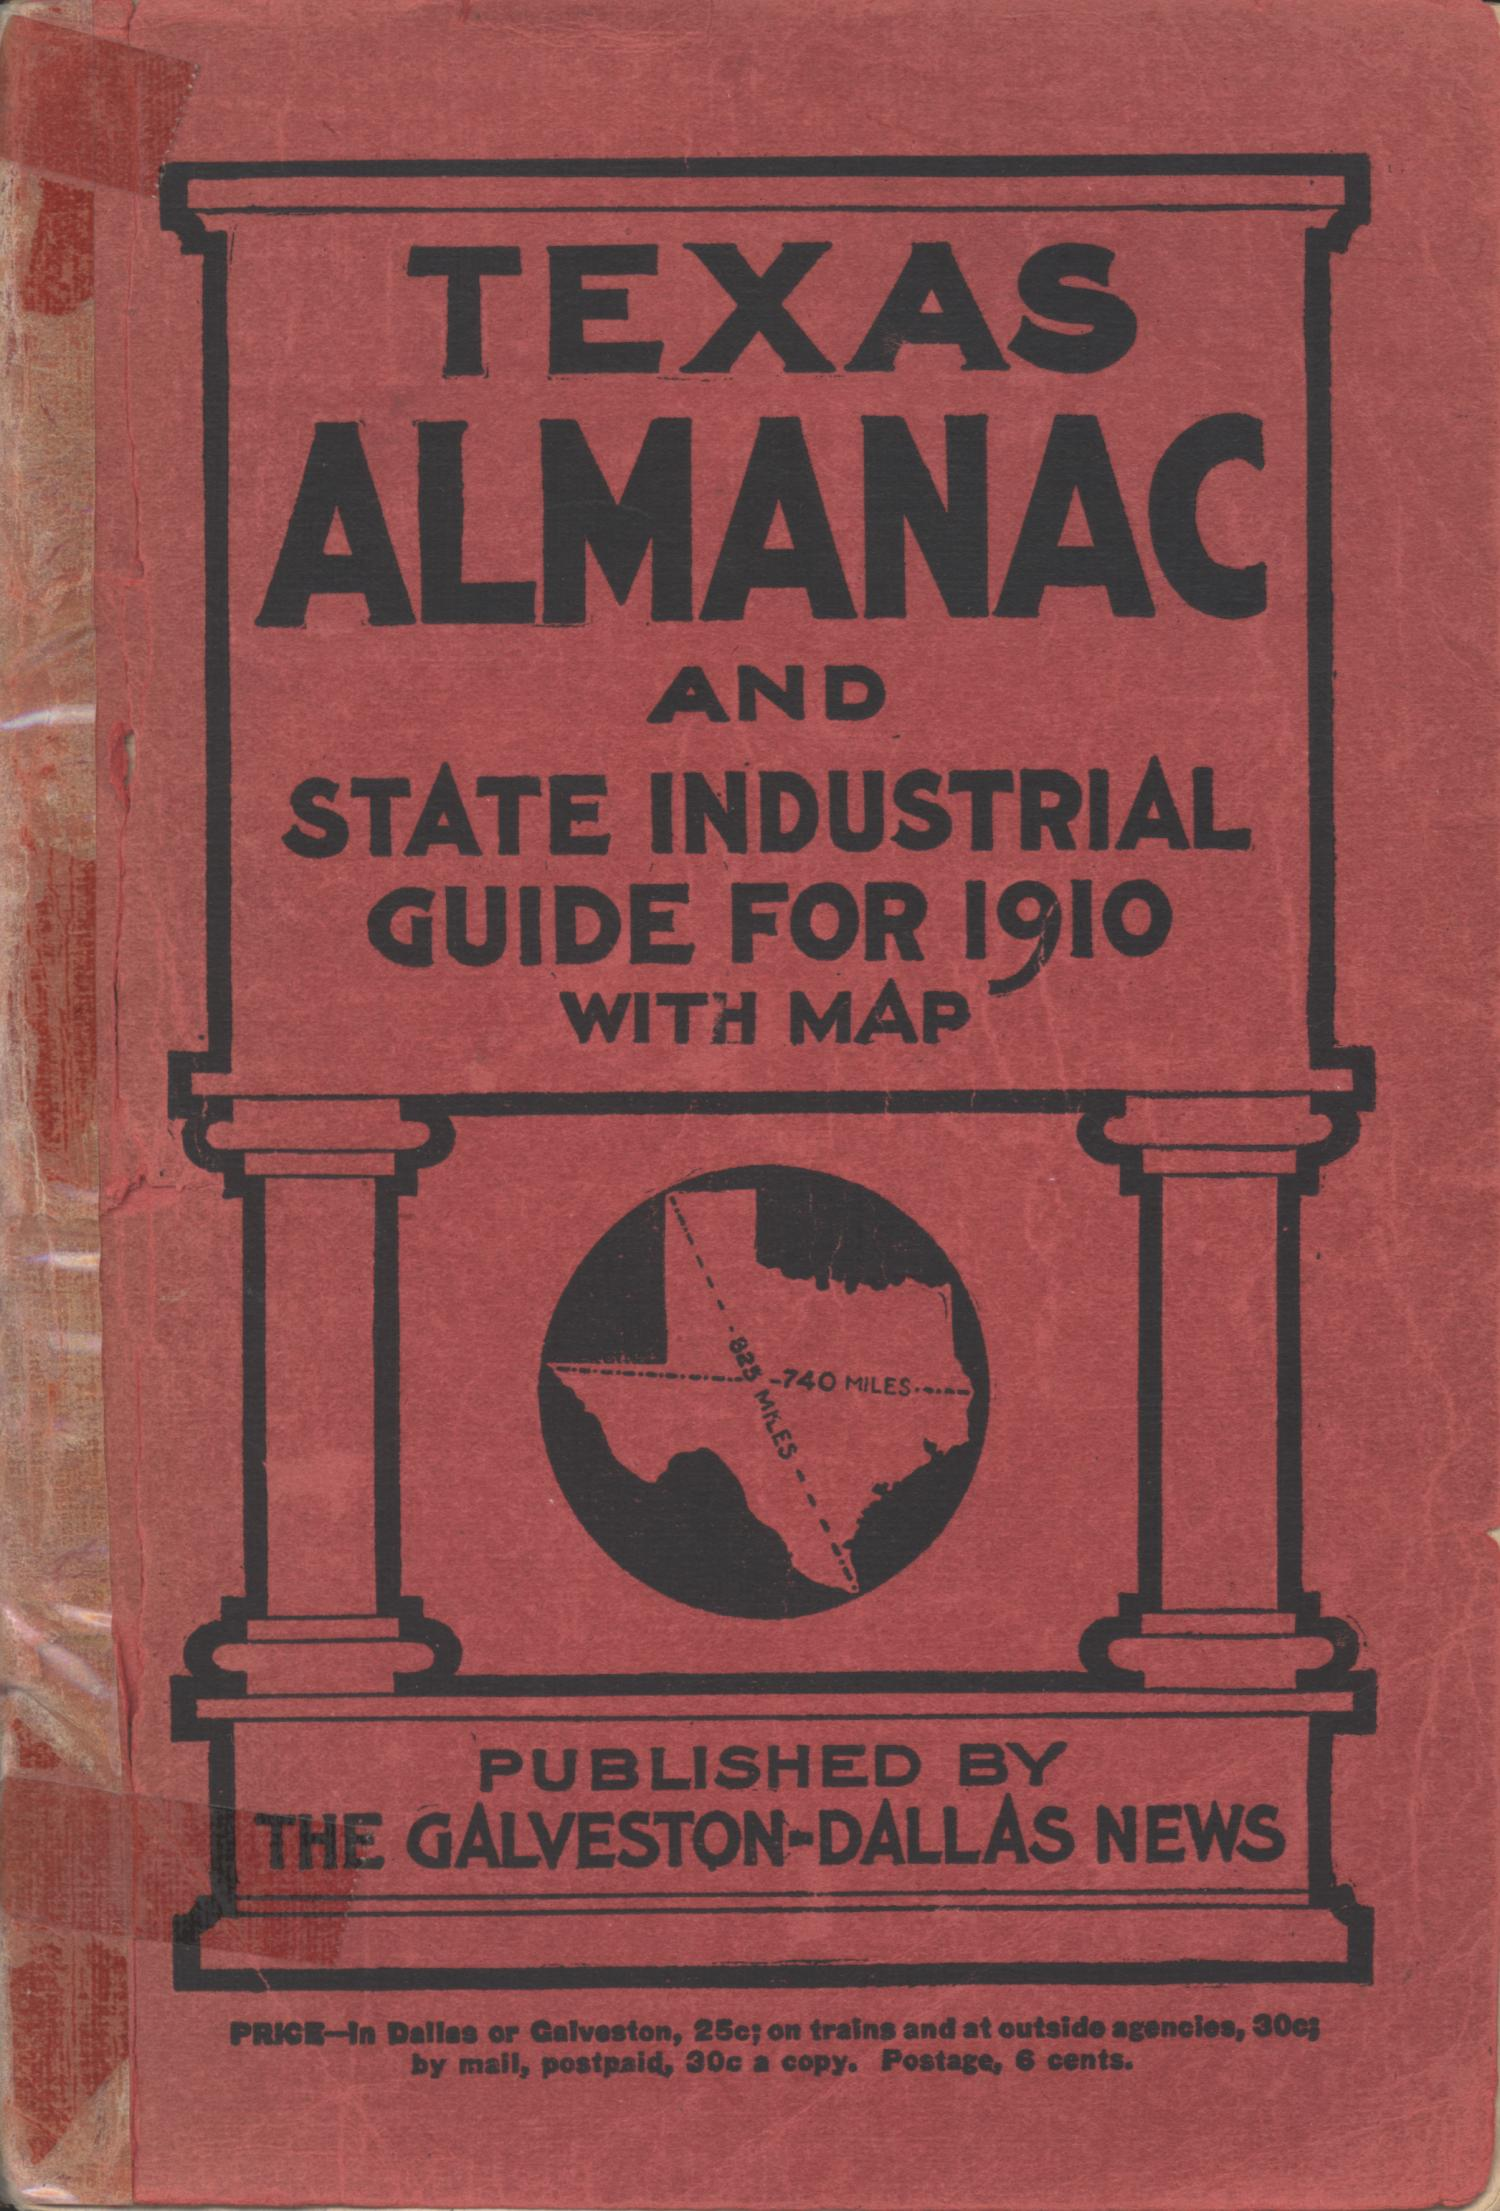 Texas Almanac and State Industrial Guide for 1910 with Map                                                                                                      Front Cover